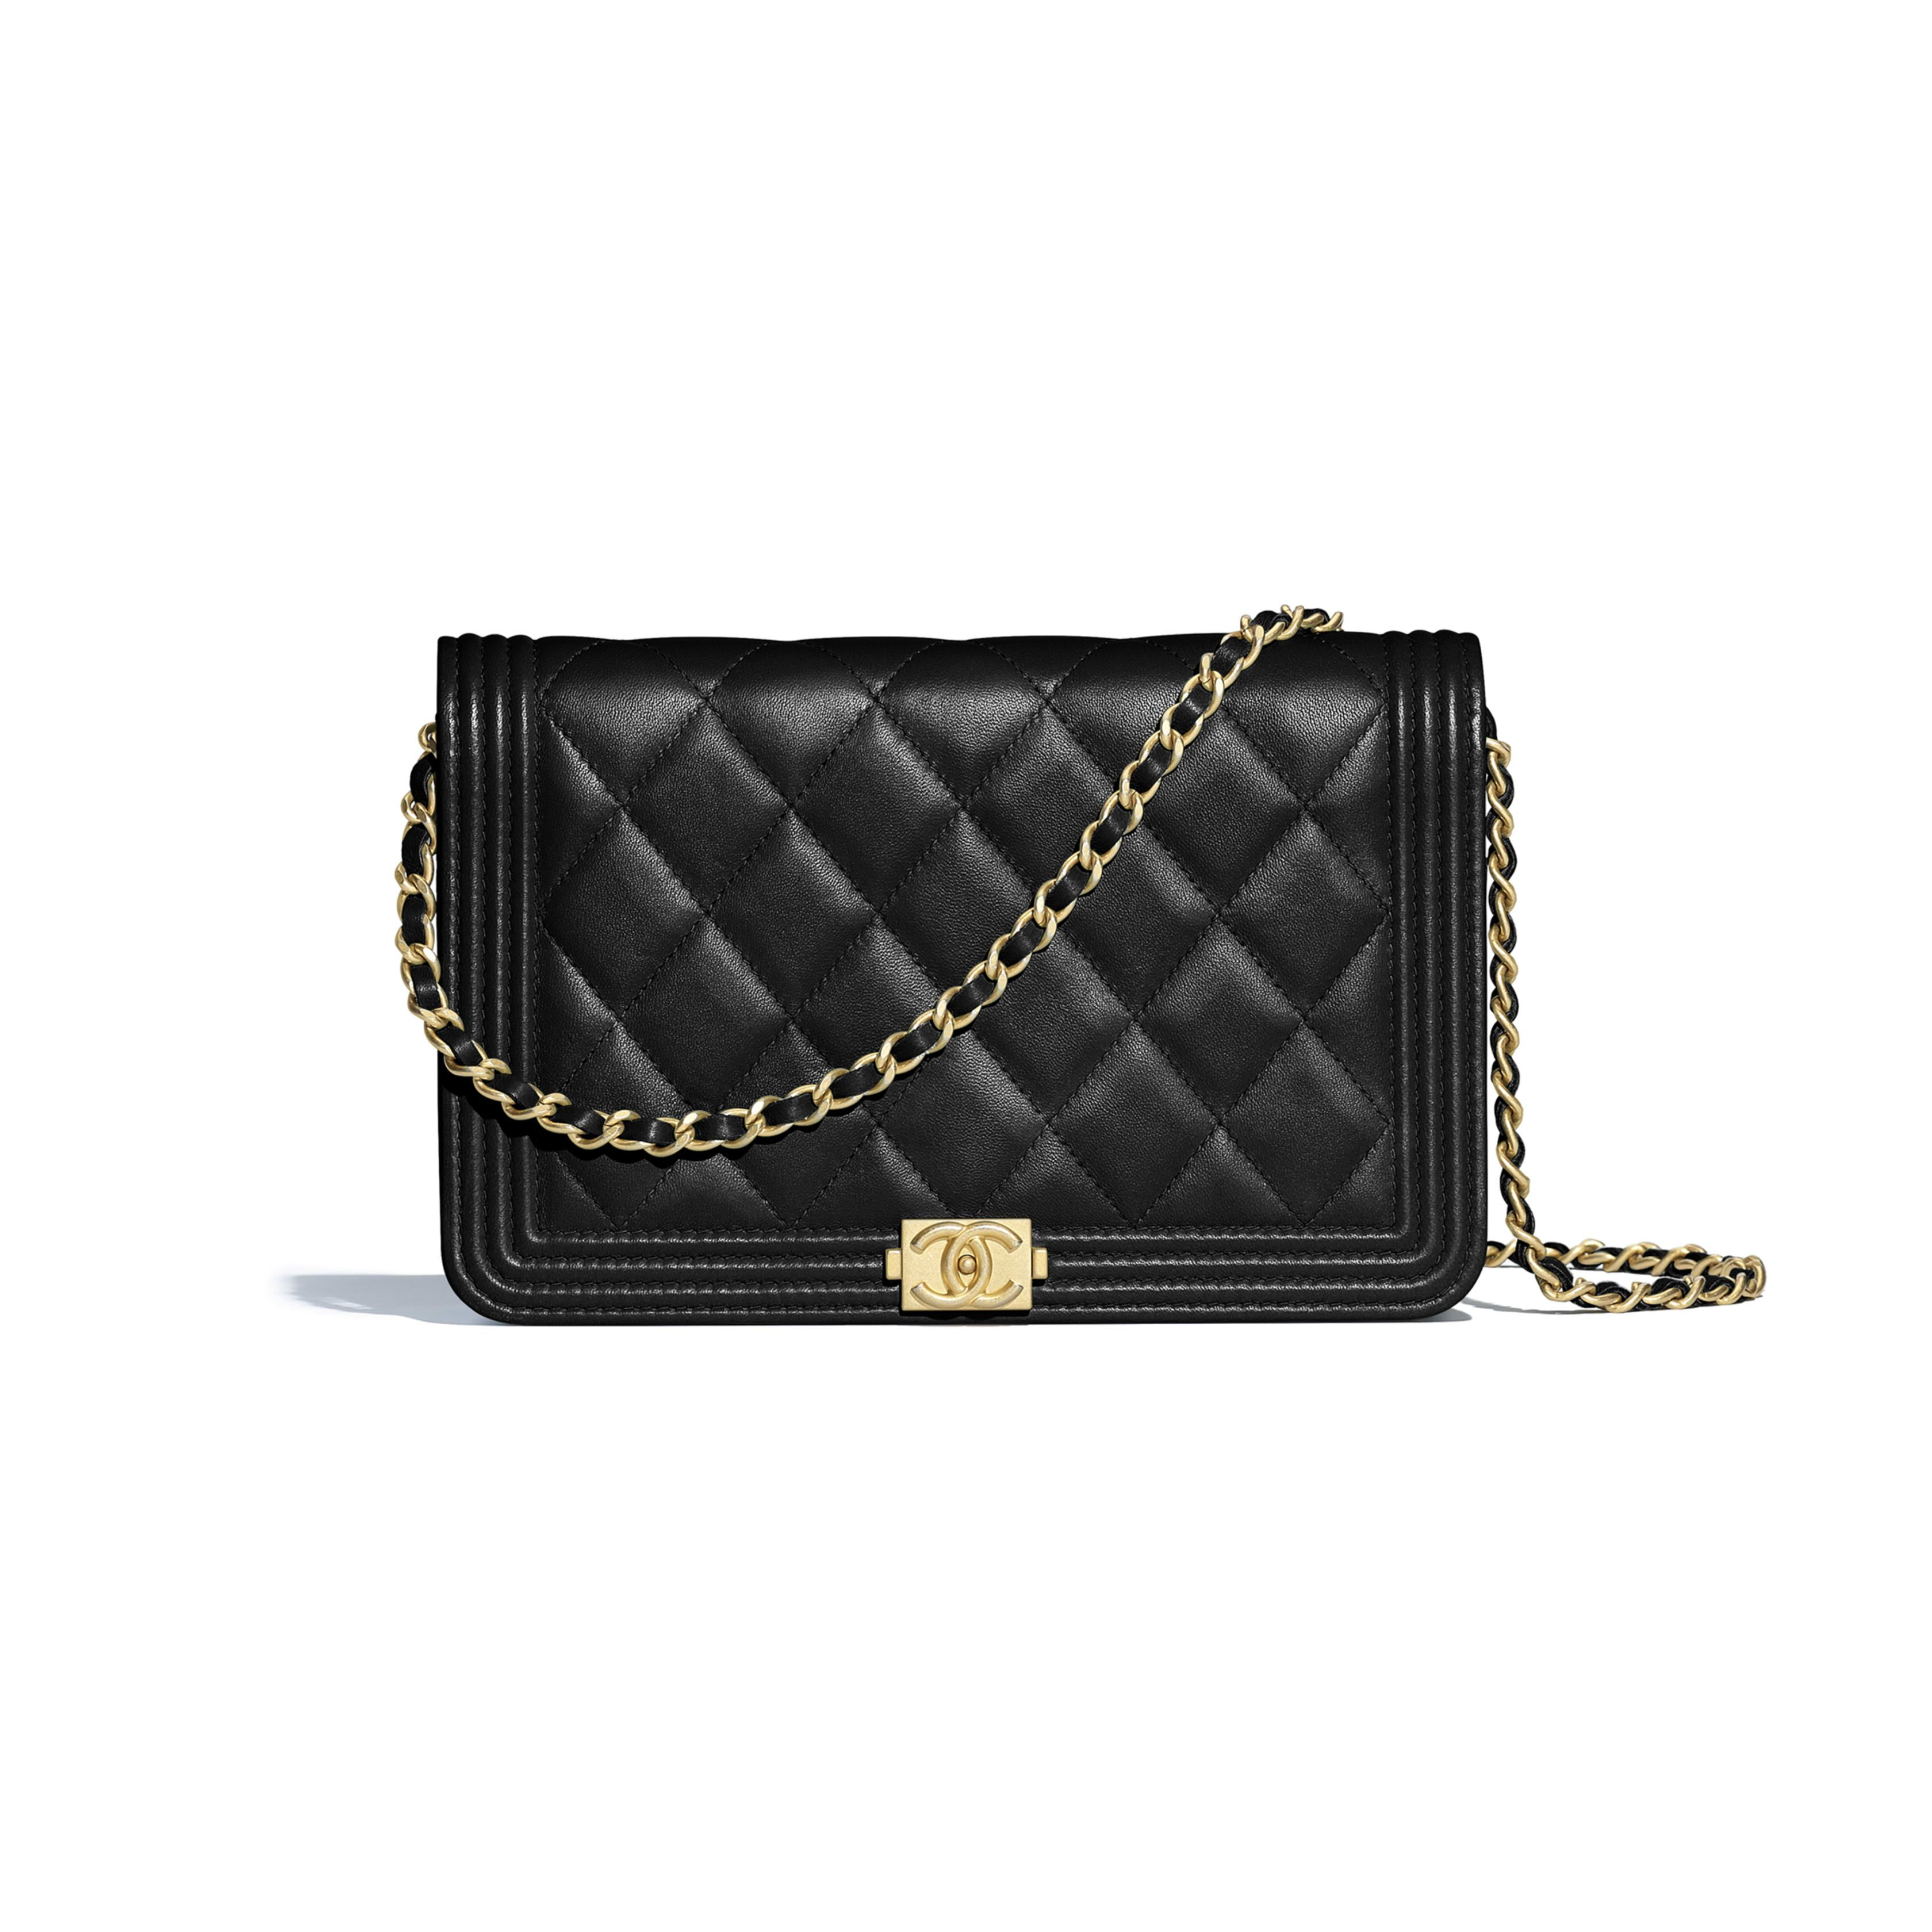 b8be5854c88e BOY CHANEL Wallet on Chain Lambskin & Gold-Tone Metal Black - view 1 - see  full sized version